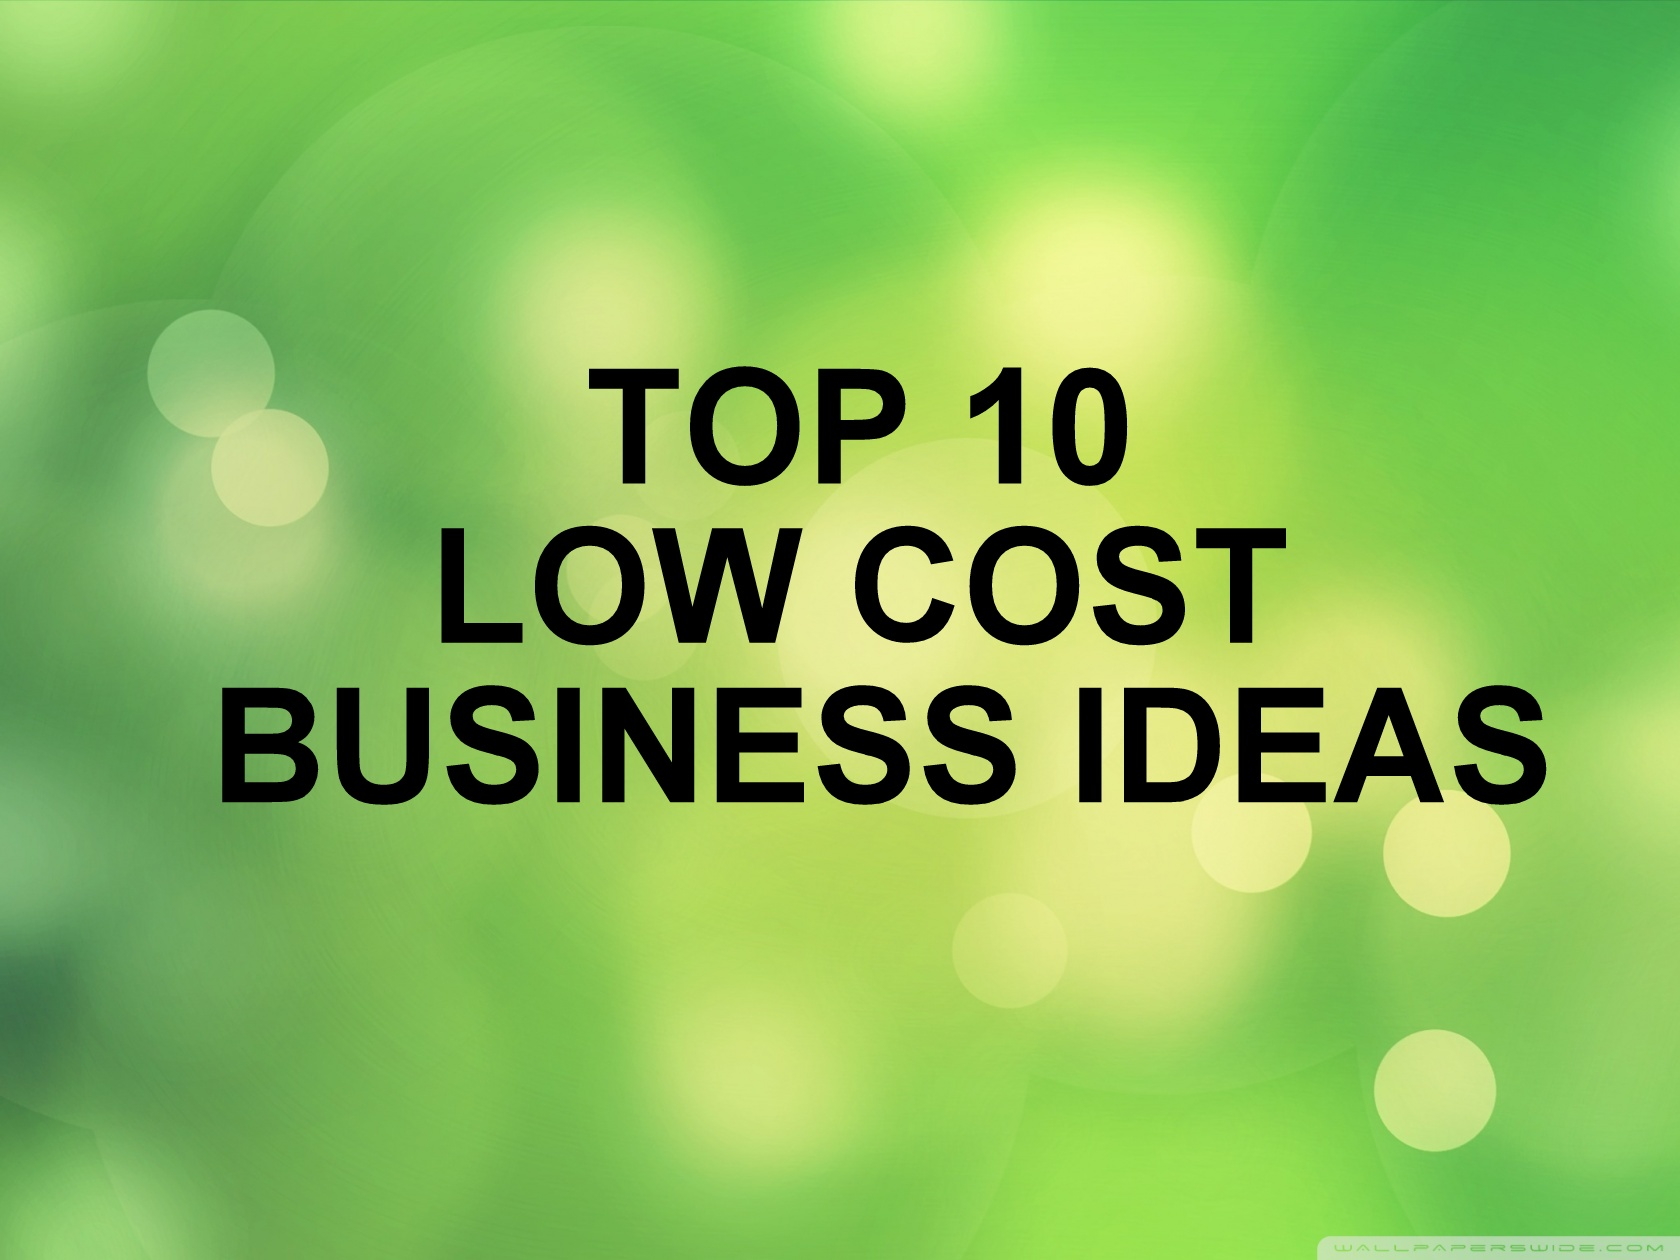 top 10 low cost business ideas entreprenoria